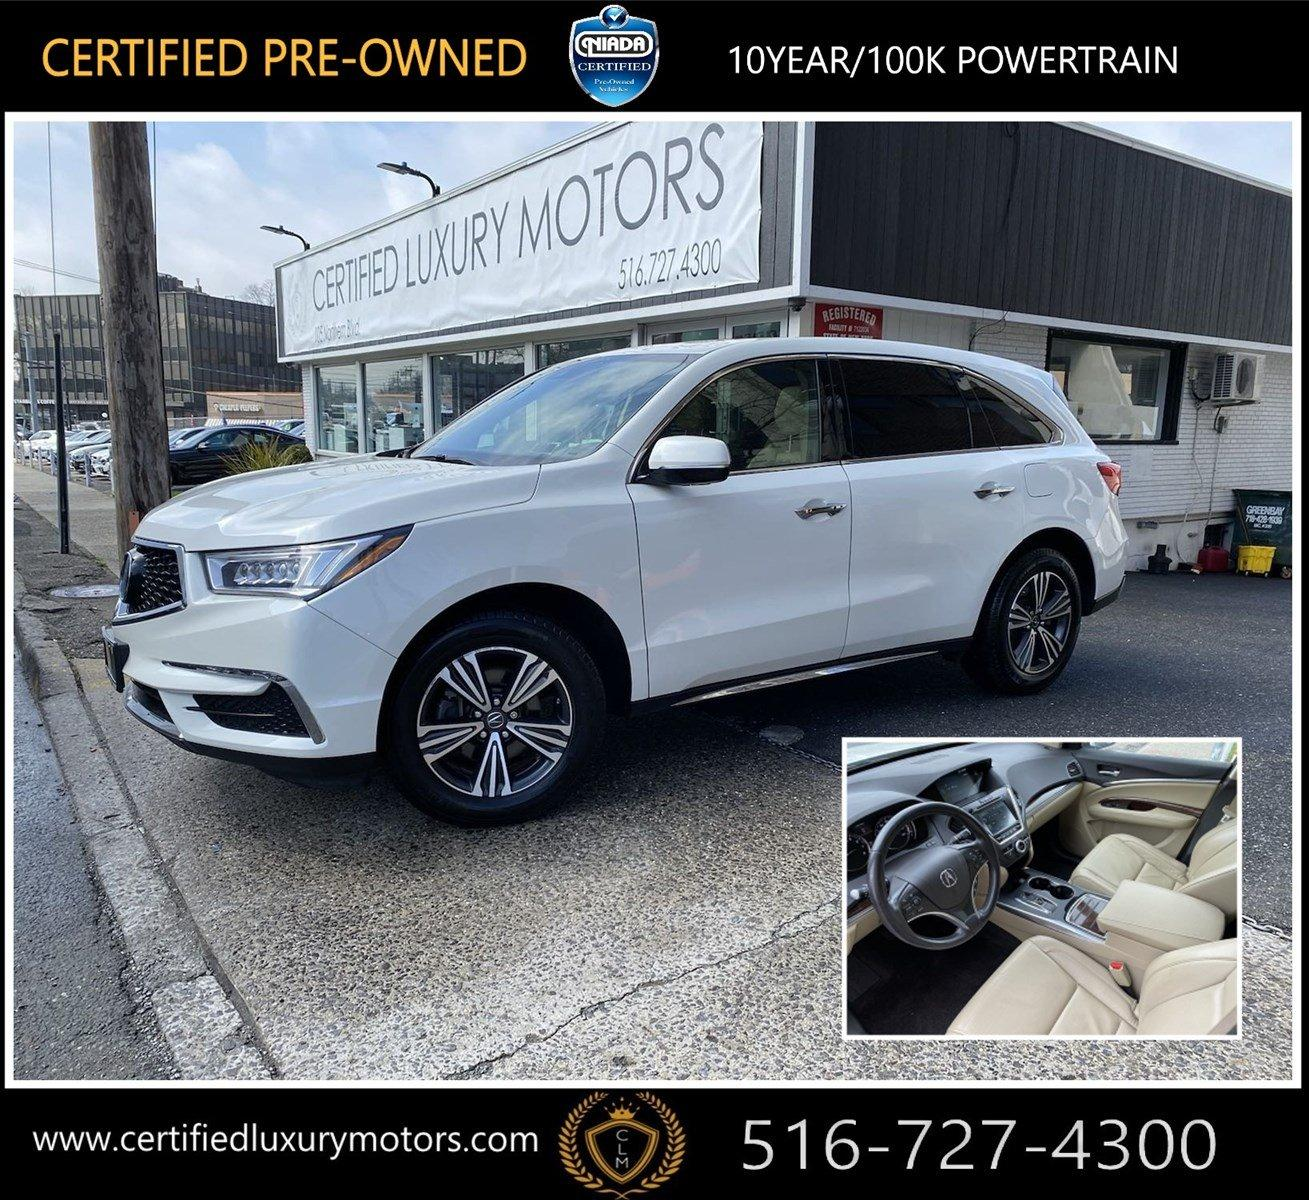 2017 Acura MDX Stock # VvC0675 For Sale Near Great Neck